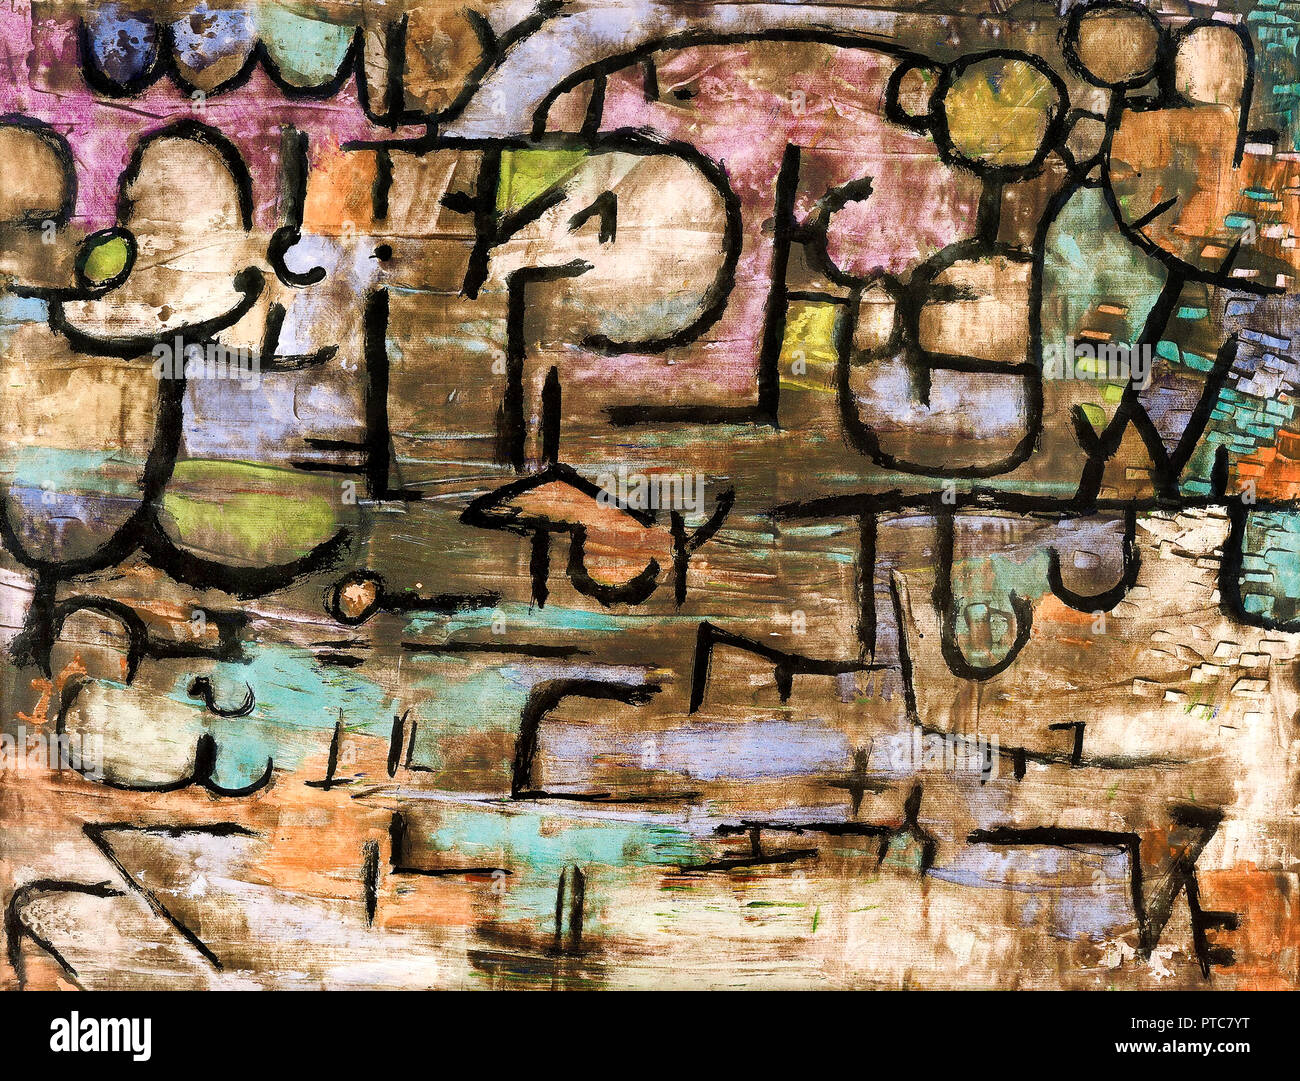 Paul Klee,  After The Flood 1936 Oil on canvas, Beyeler Foundation, Riehen, Switzerland. - Stock Image